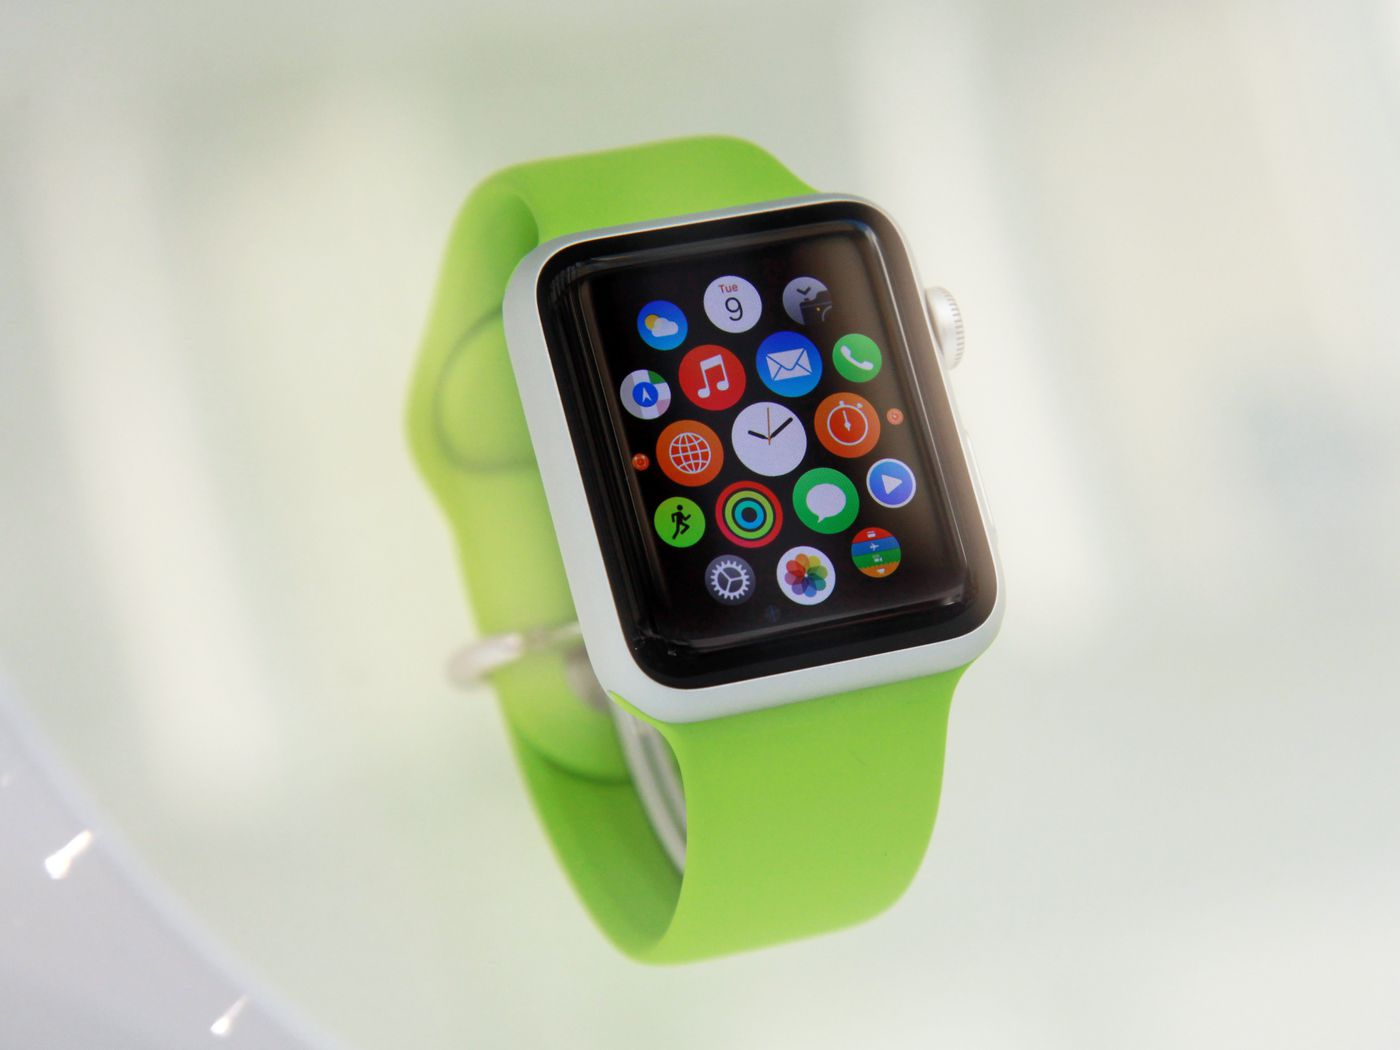 Does Looking At The Apple Watch Make Your Skin Crawl You Re Not